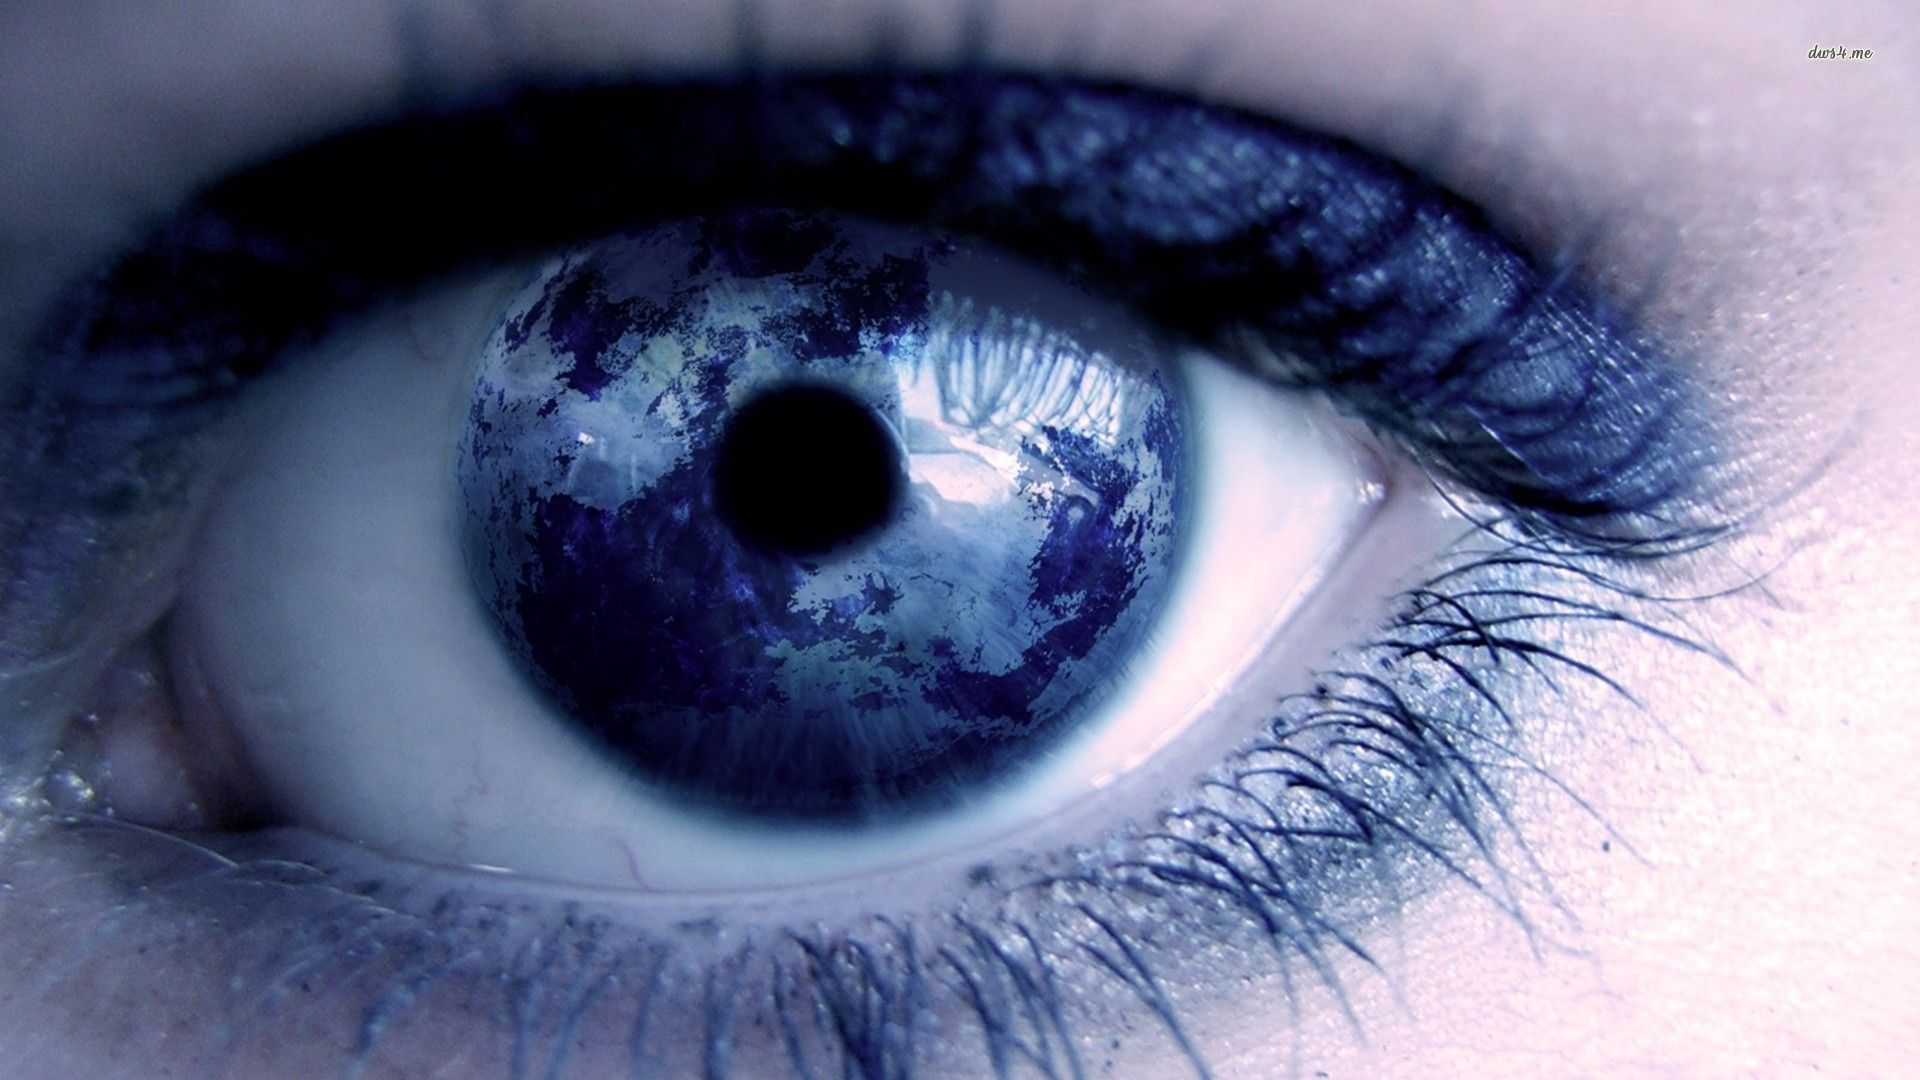 Hd wallpaper eyes - 3d Digital Art Eye Blue 20461 Blue Eyes 1920x1080 Digital